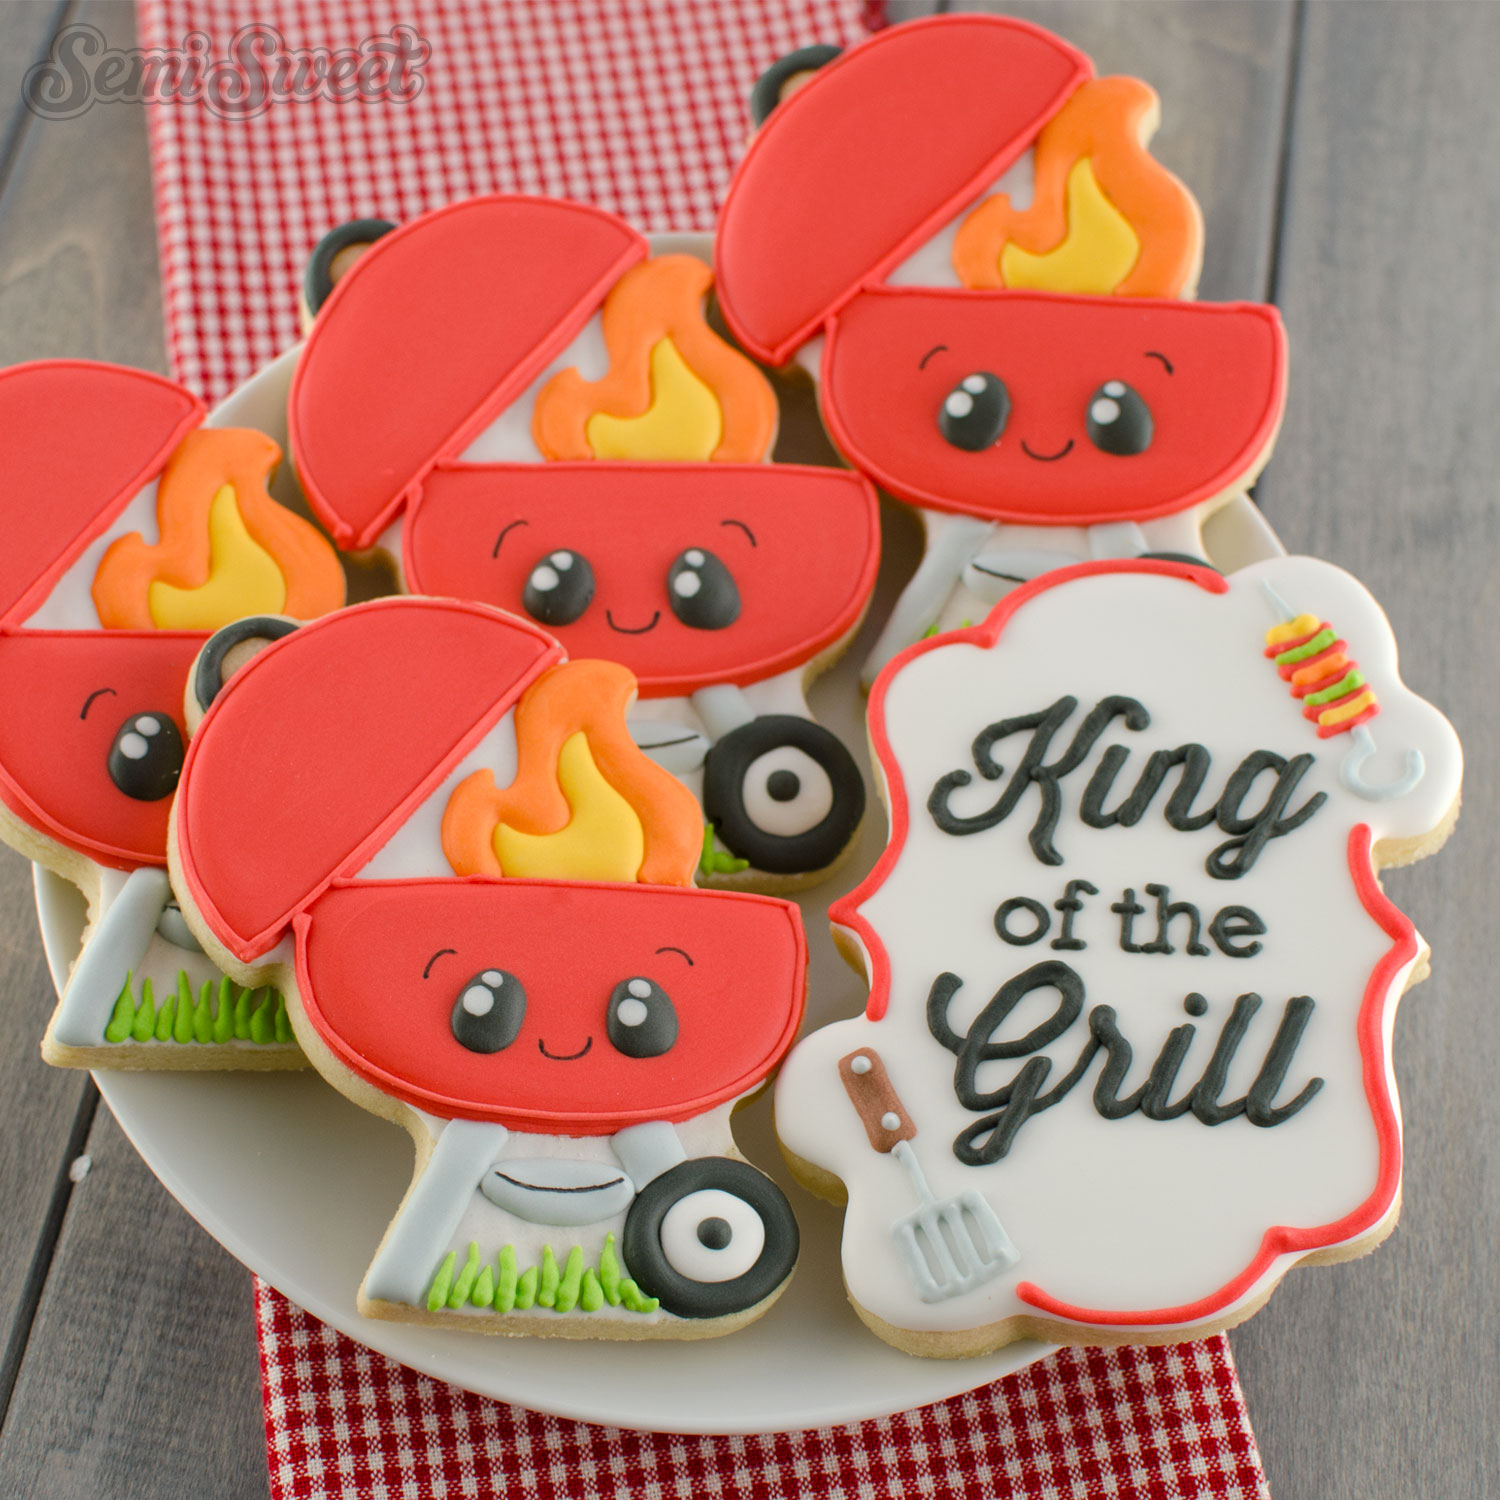 How to Make BBQ Grill Cookies by SemiSweetDesigns.com